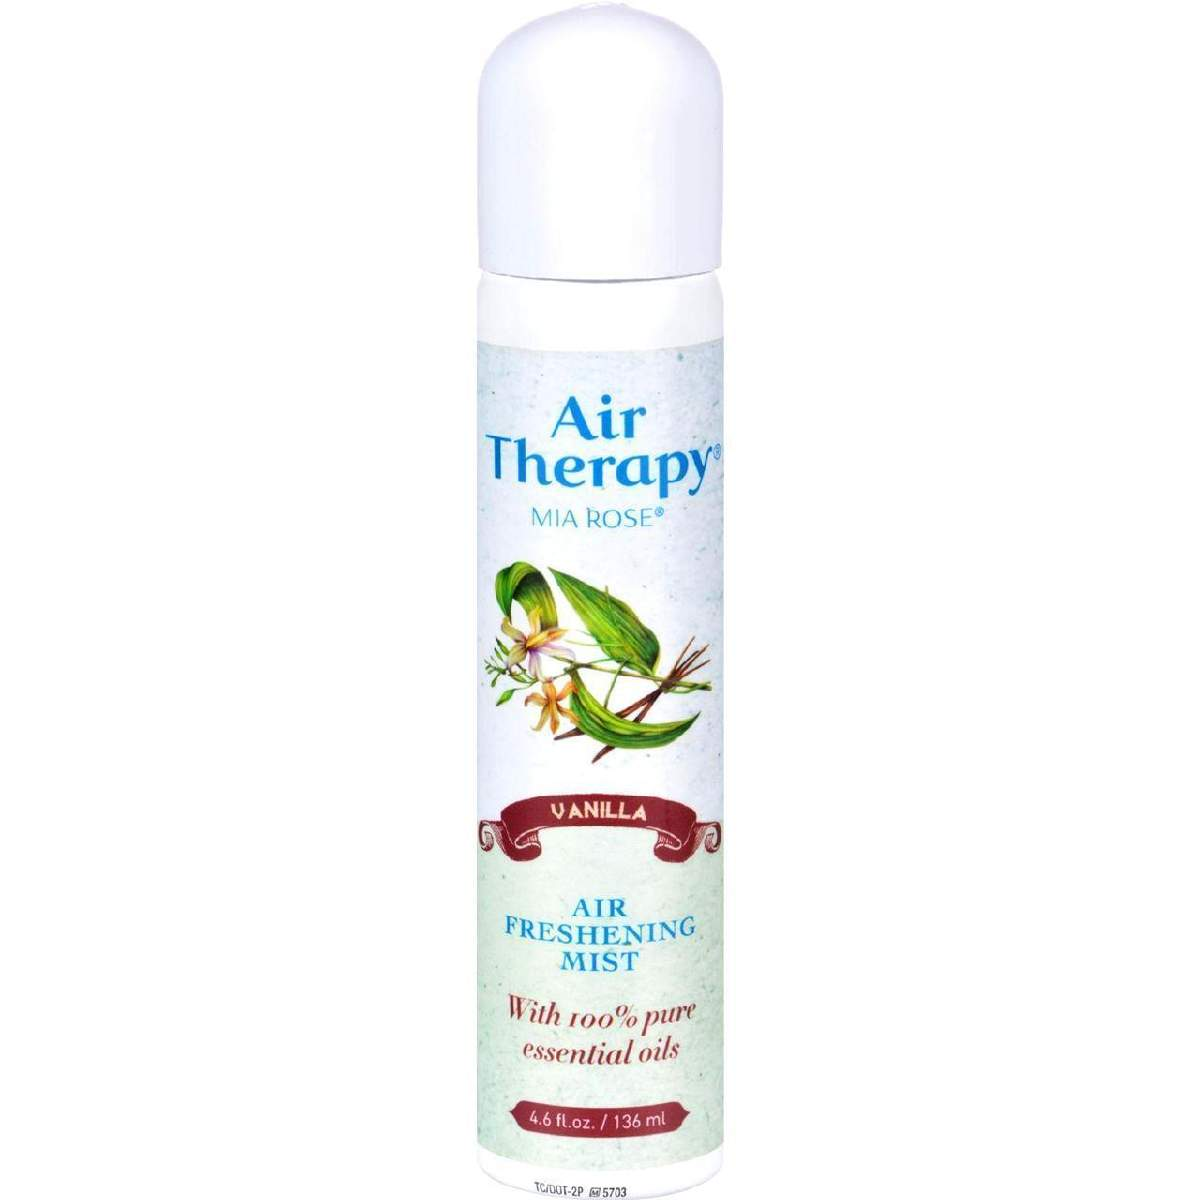 Air Therapy Natural Purifying Mist Vibrant Vanilla - 4.6 Fl Oz